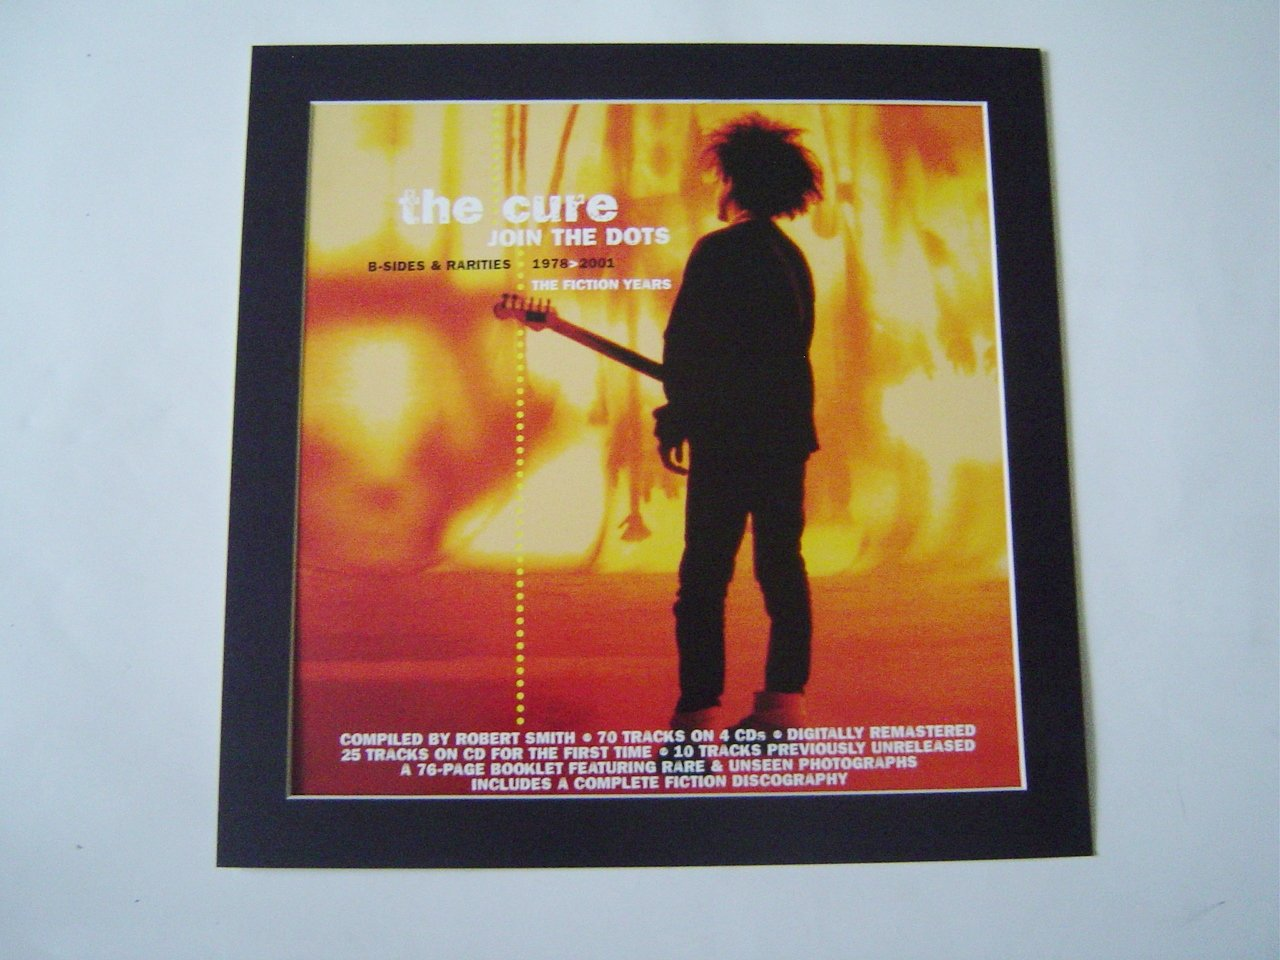 CURE JOIN THE DOTS POSTER IN A MOUNT READY TO FRAME: Amazon co uk